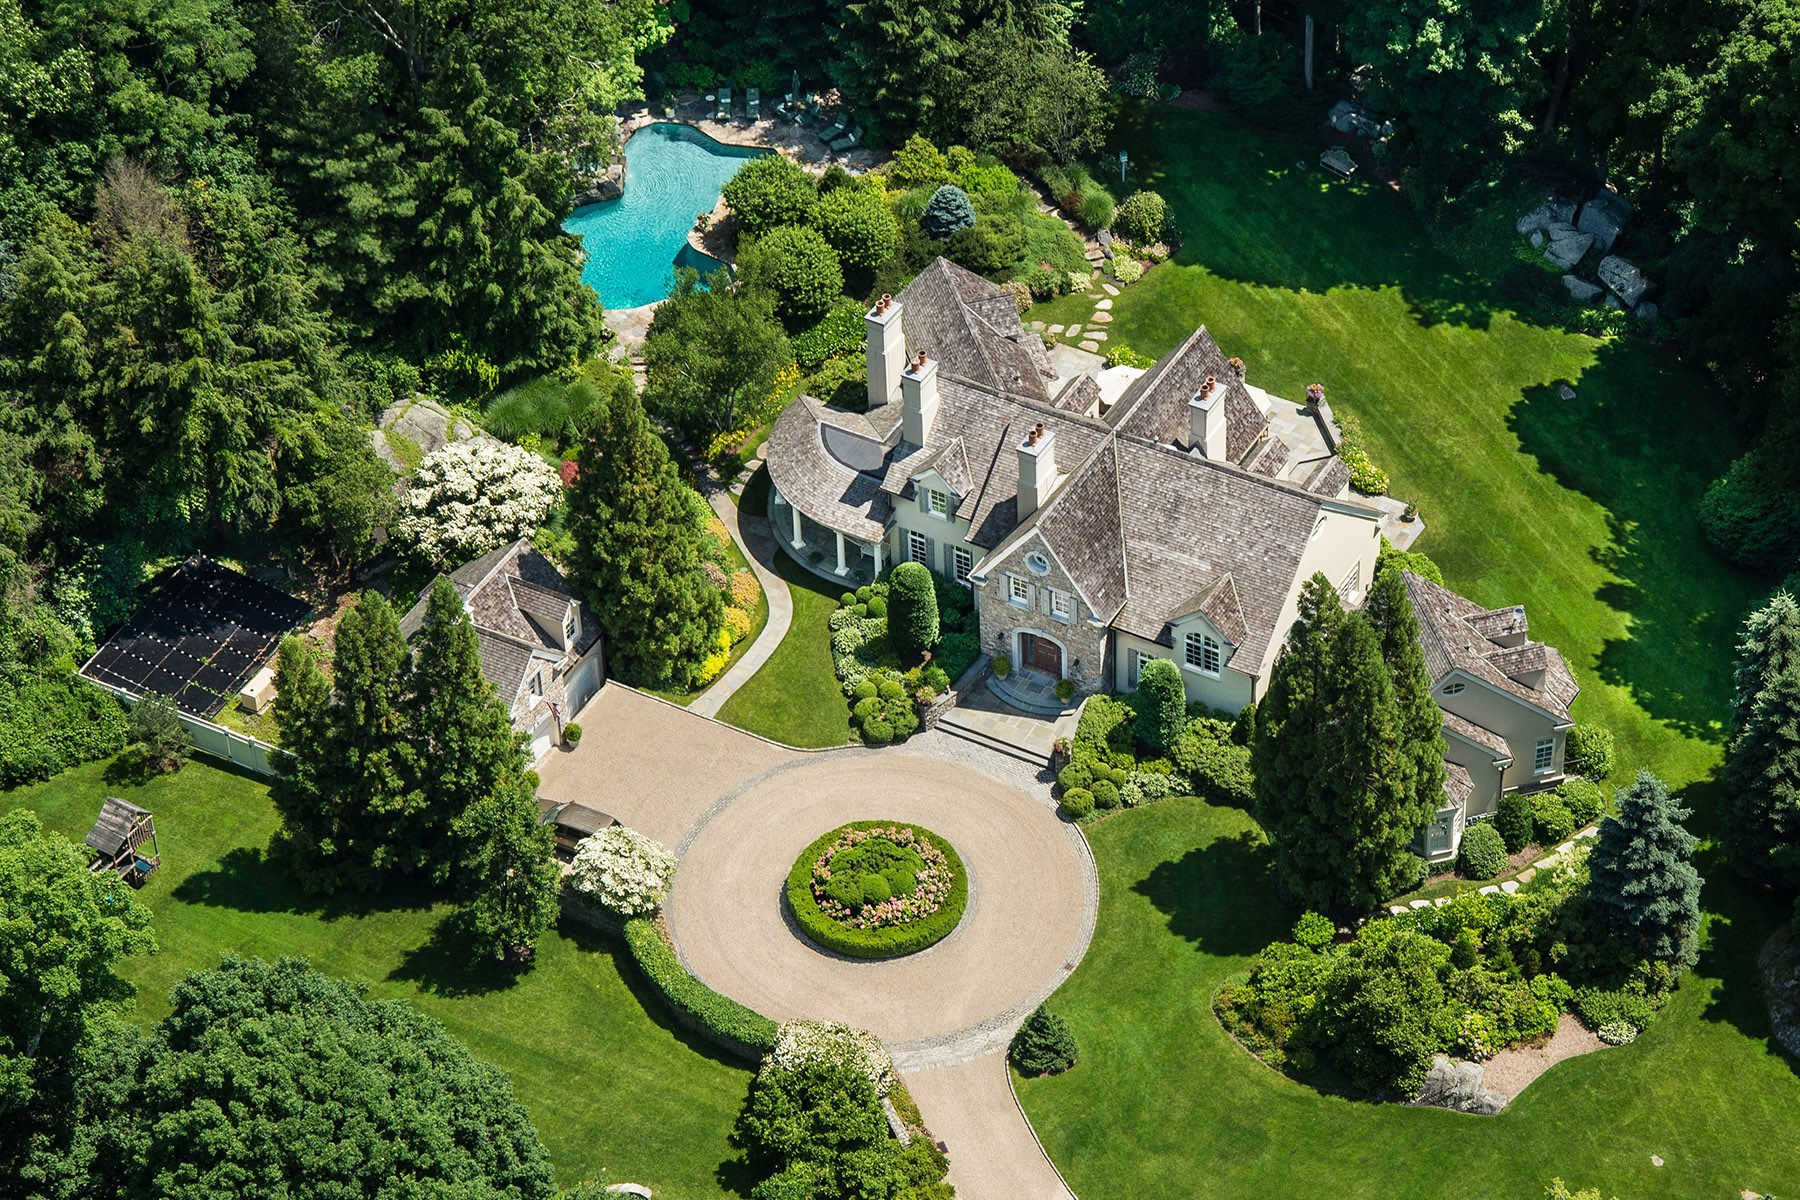 Single Family Home for Sale at 113 Round Hill Road, Greenwich CT South Of Parkway, Greenwich, Connecticut, 06830 United States